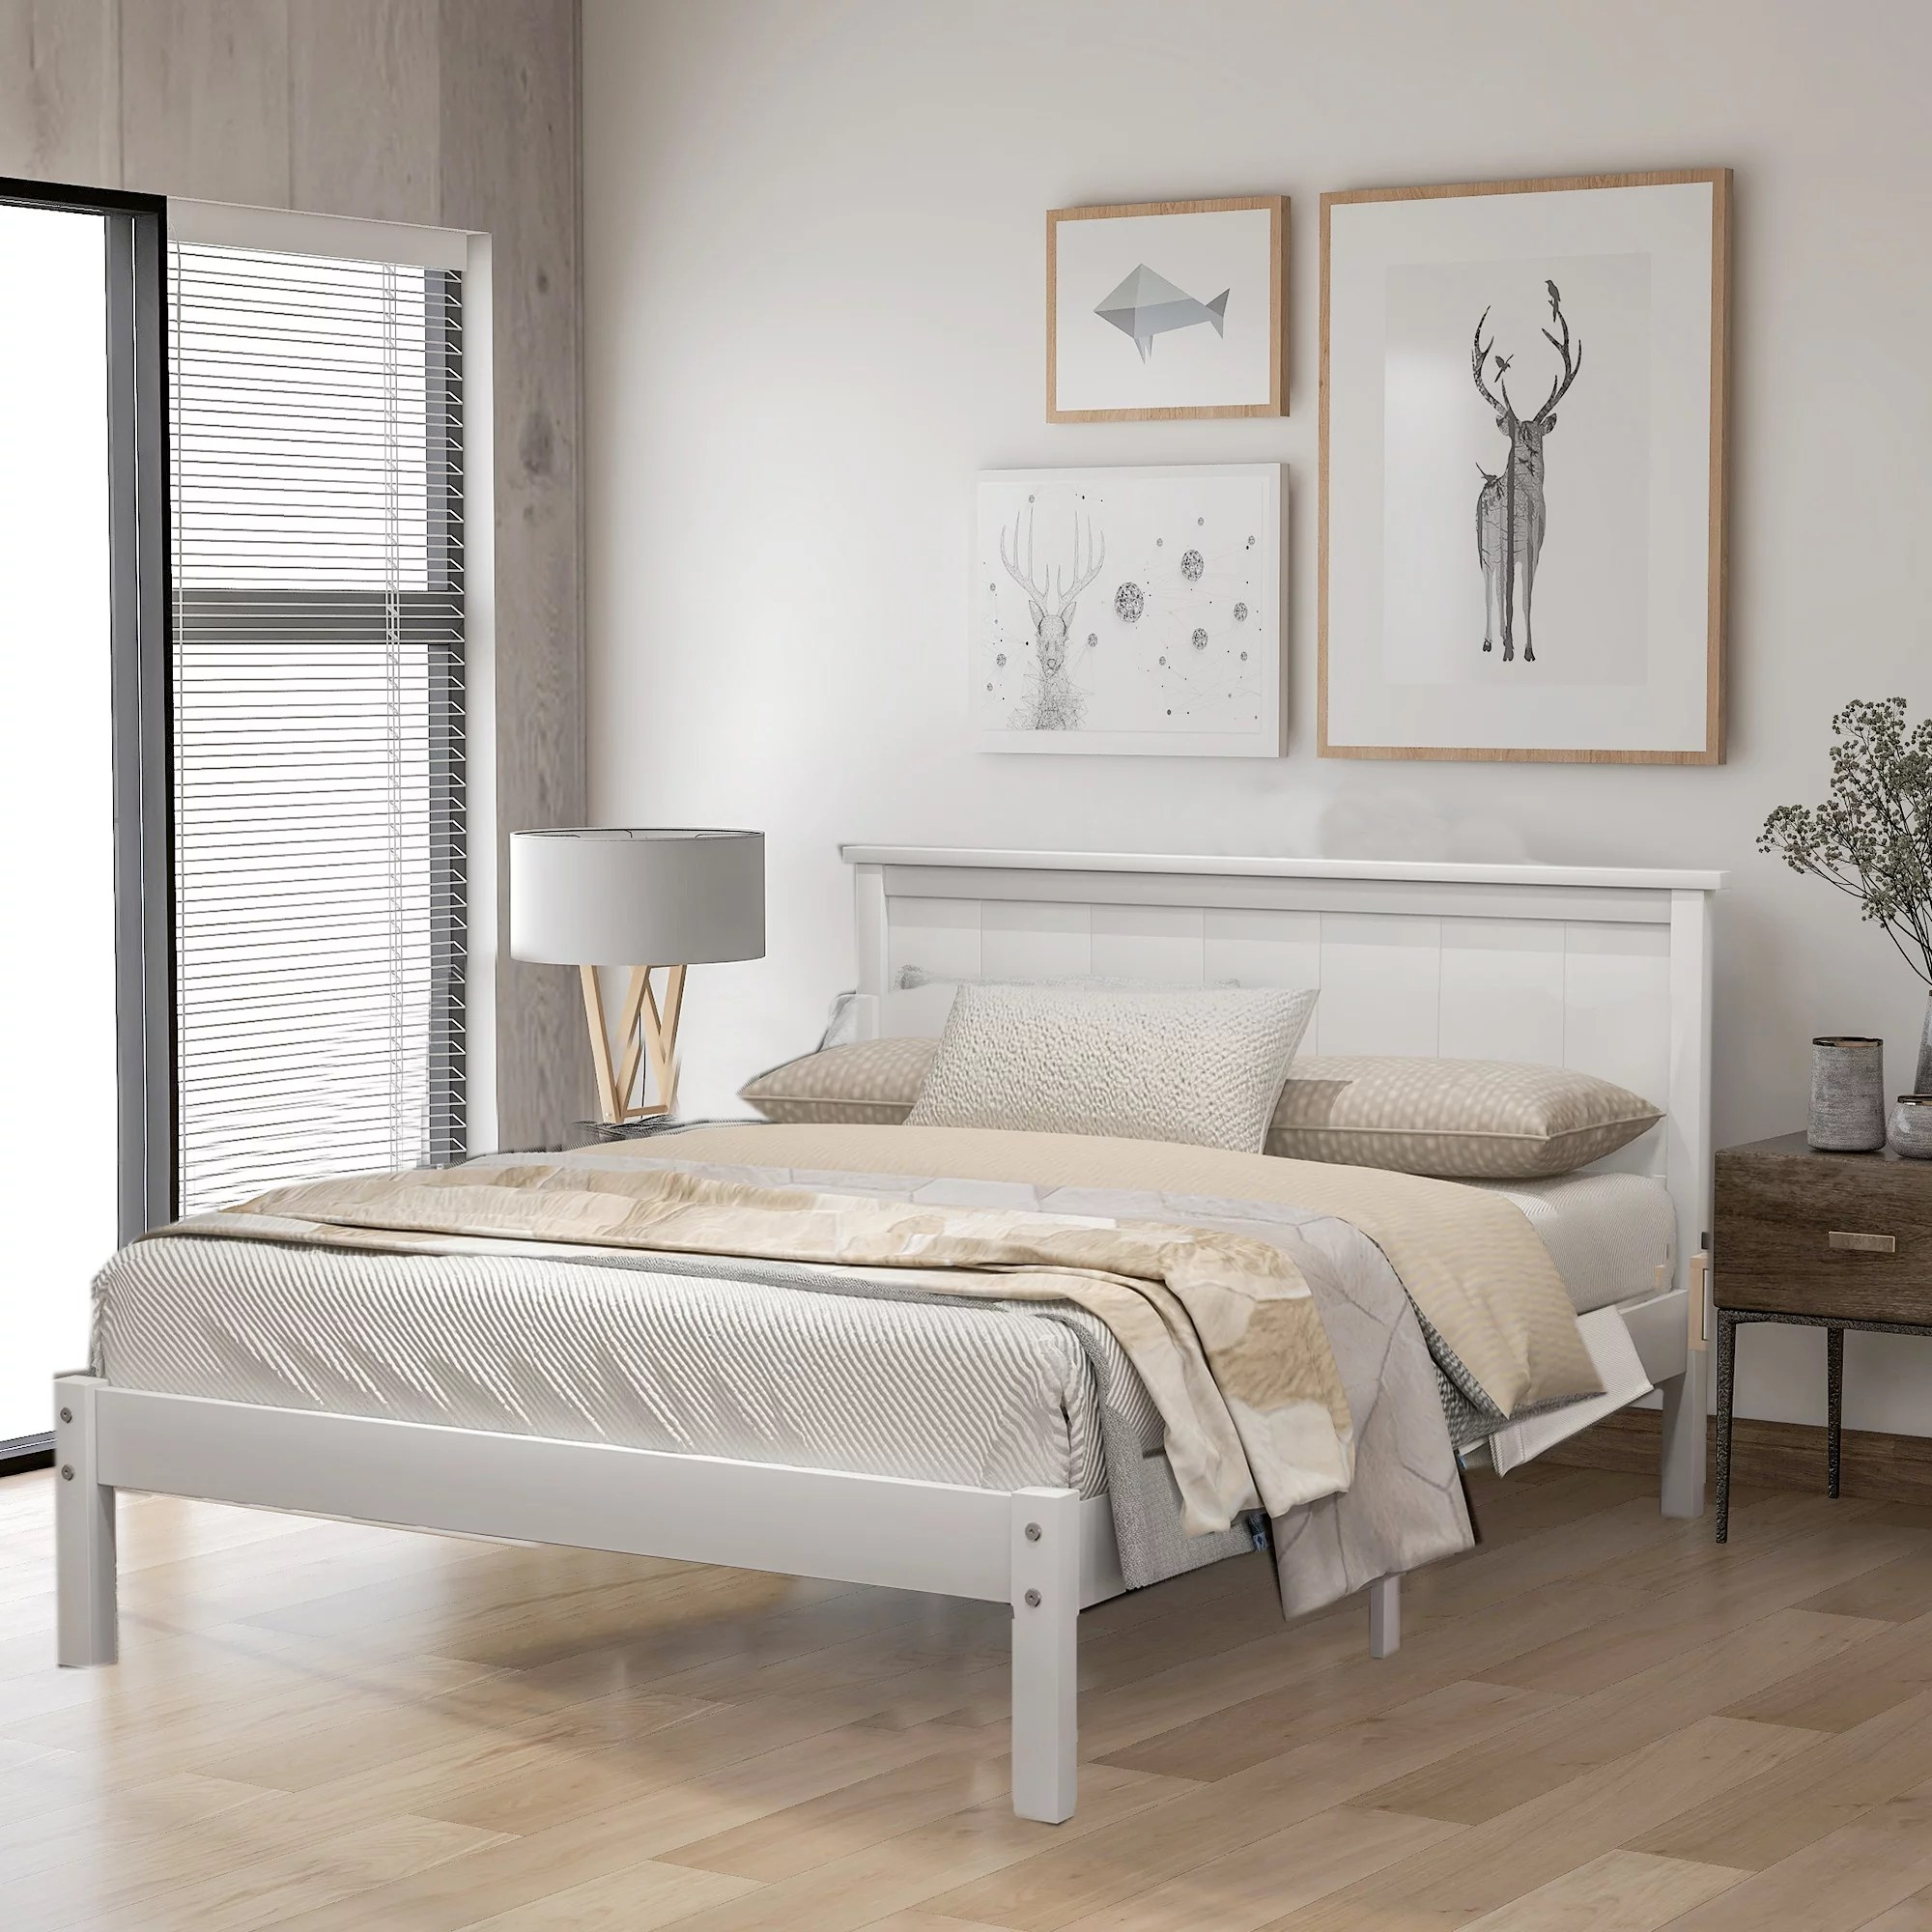 Queen Bed Frame No Box Spring Needed Newest Solid Wood Platform Bed Frame With Headboard Strong Wooden Slats Easy Assembly Queen Bed Frame For Kids Queen Bed Frame For Adults White W7446